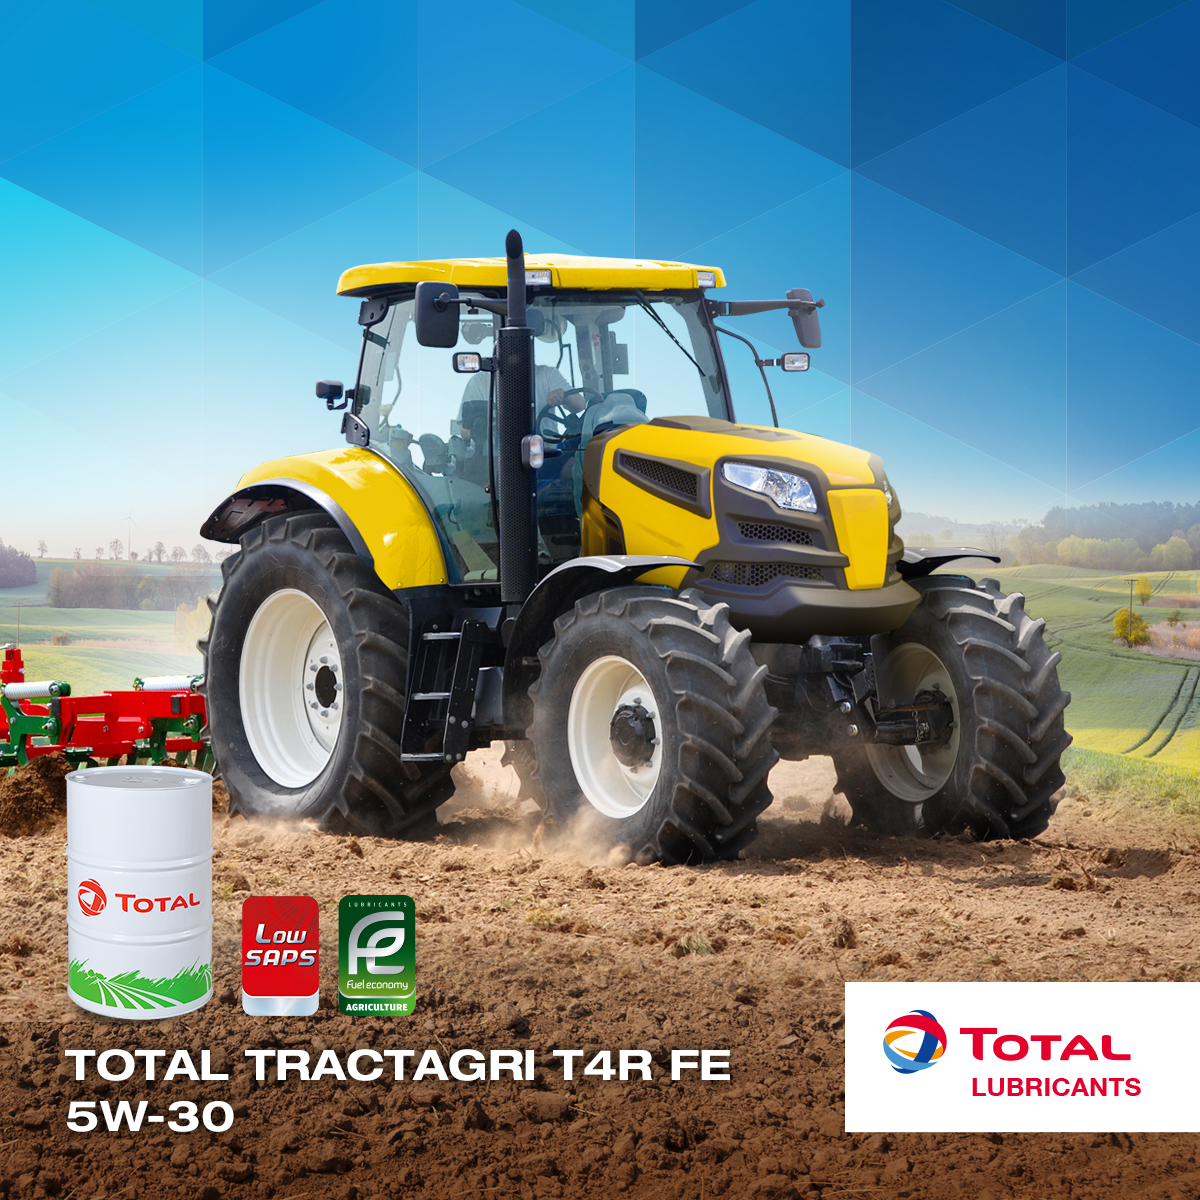 Total Tractagri agricultural engine oil